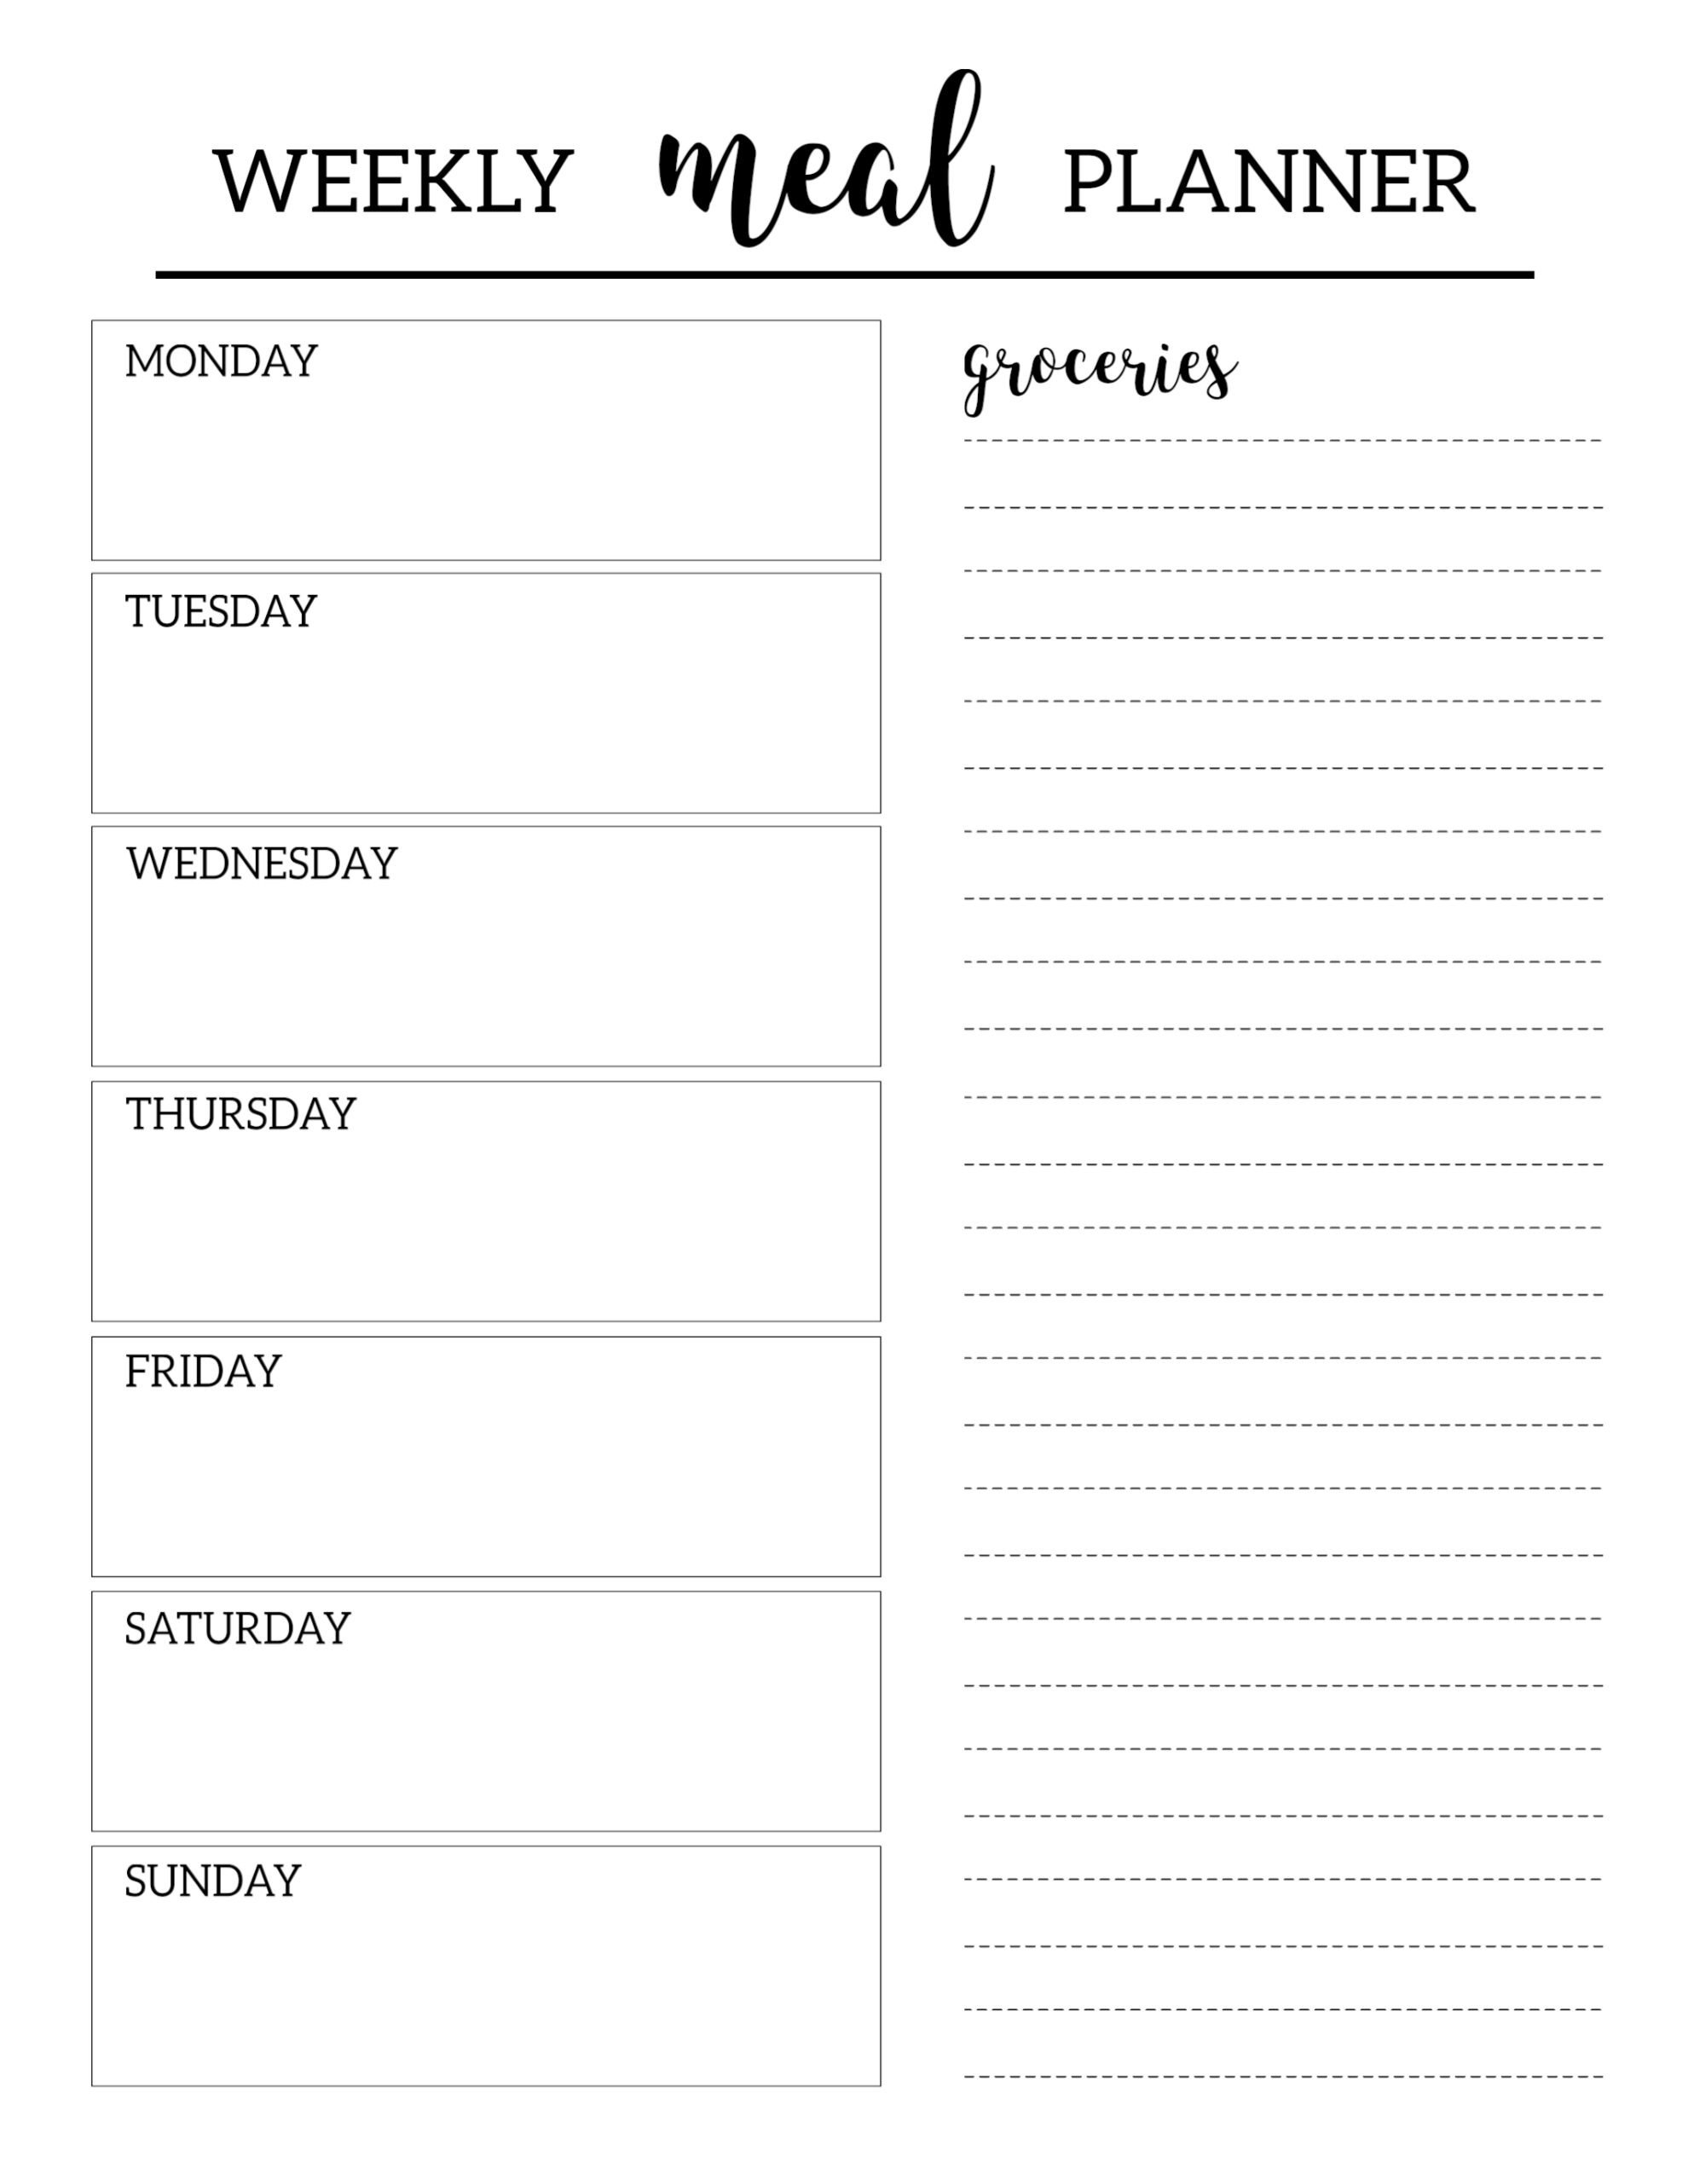 Free Weekly Meal Planner Template Free Printable Meal Planner Template Paper Trail Design